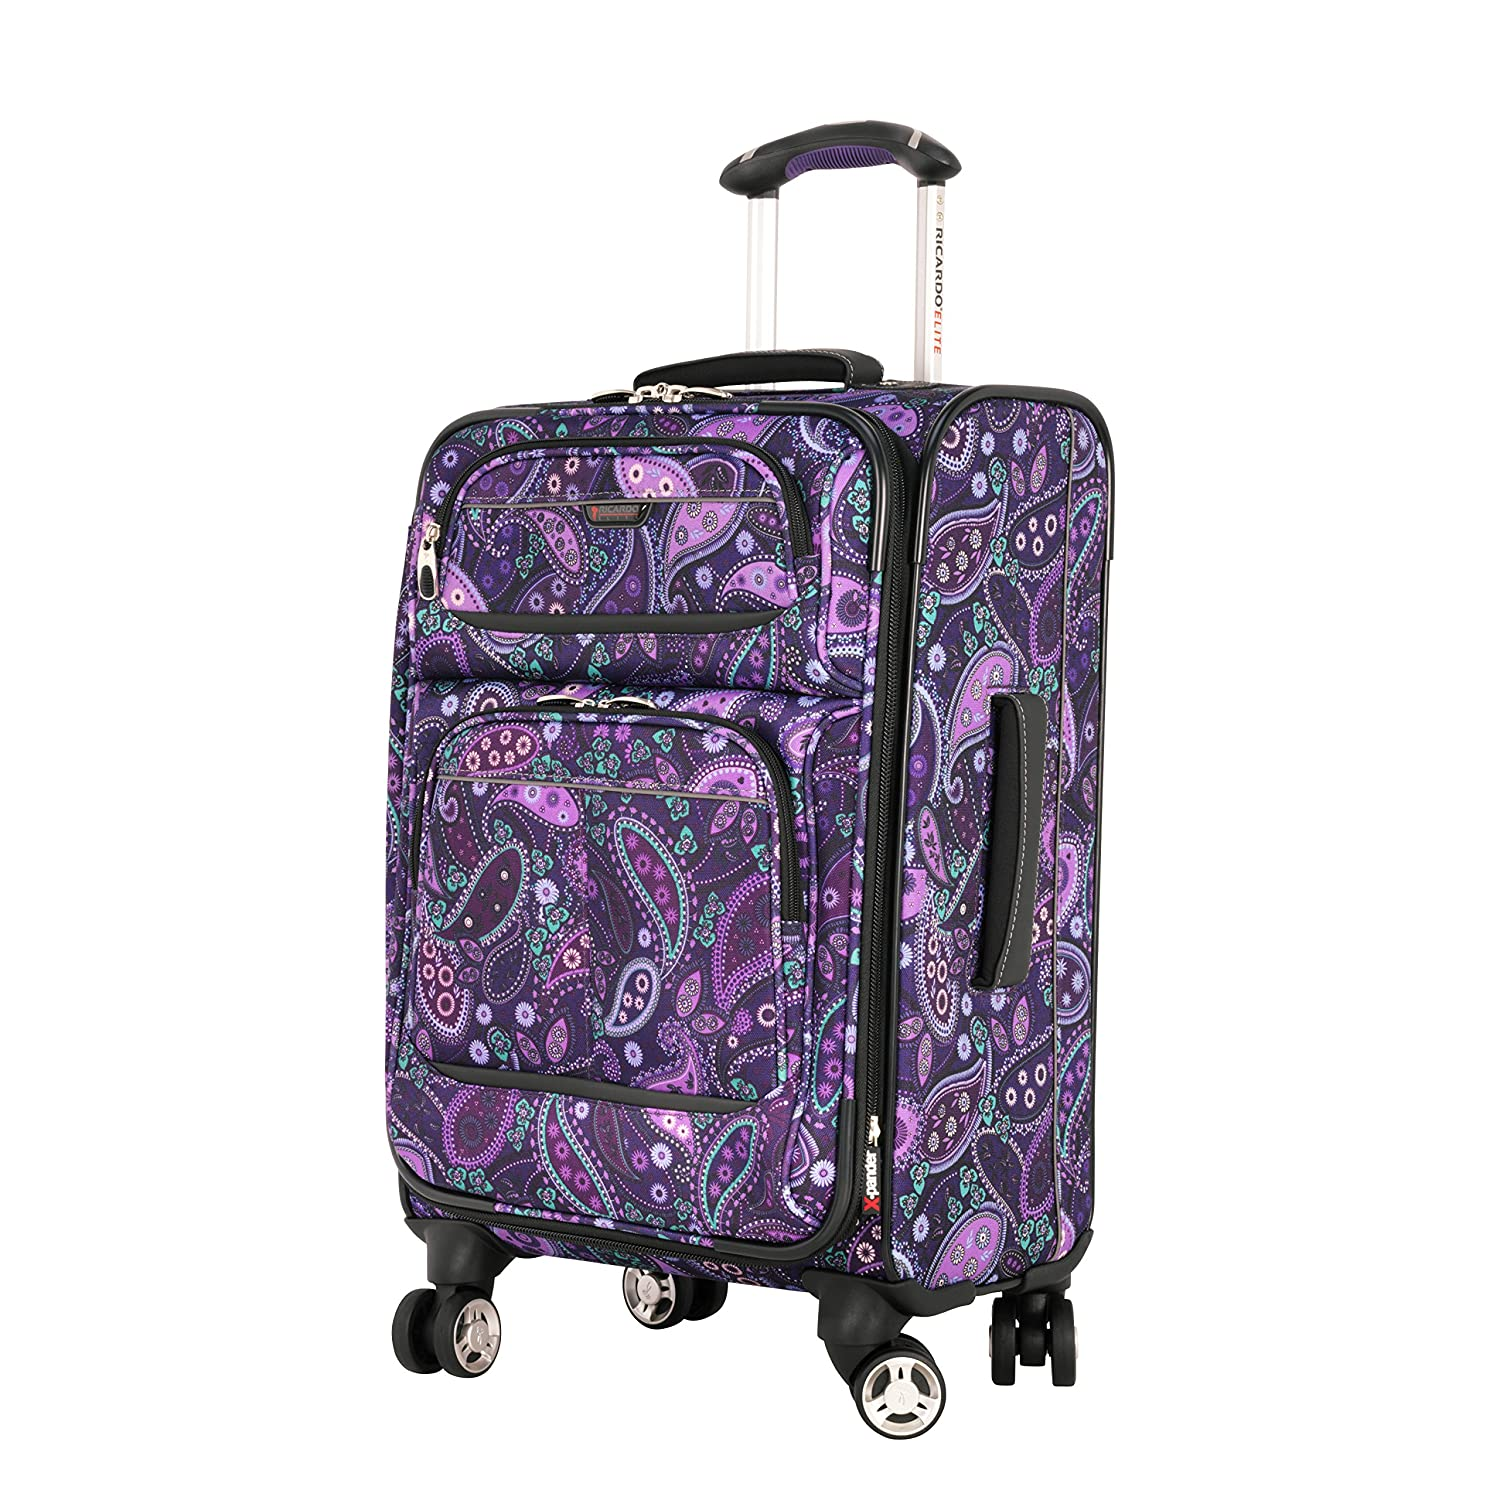 Ricardo Beverly Hills Mar Vista 20-Inch 4 Wheel Expandable Wheelaboard, Purple Paisley, One Size 069-20-557-4WB